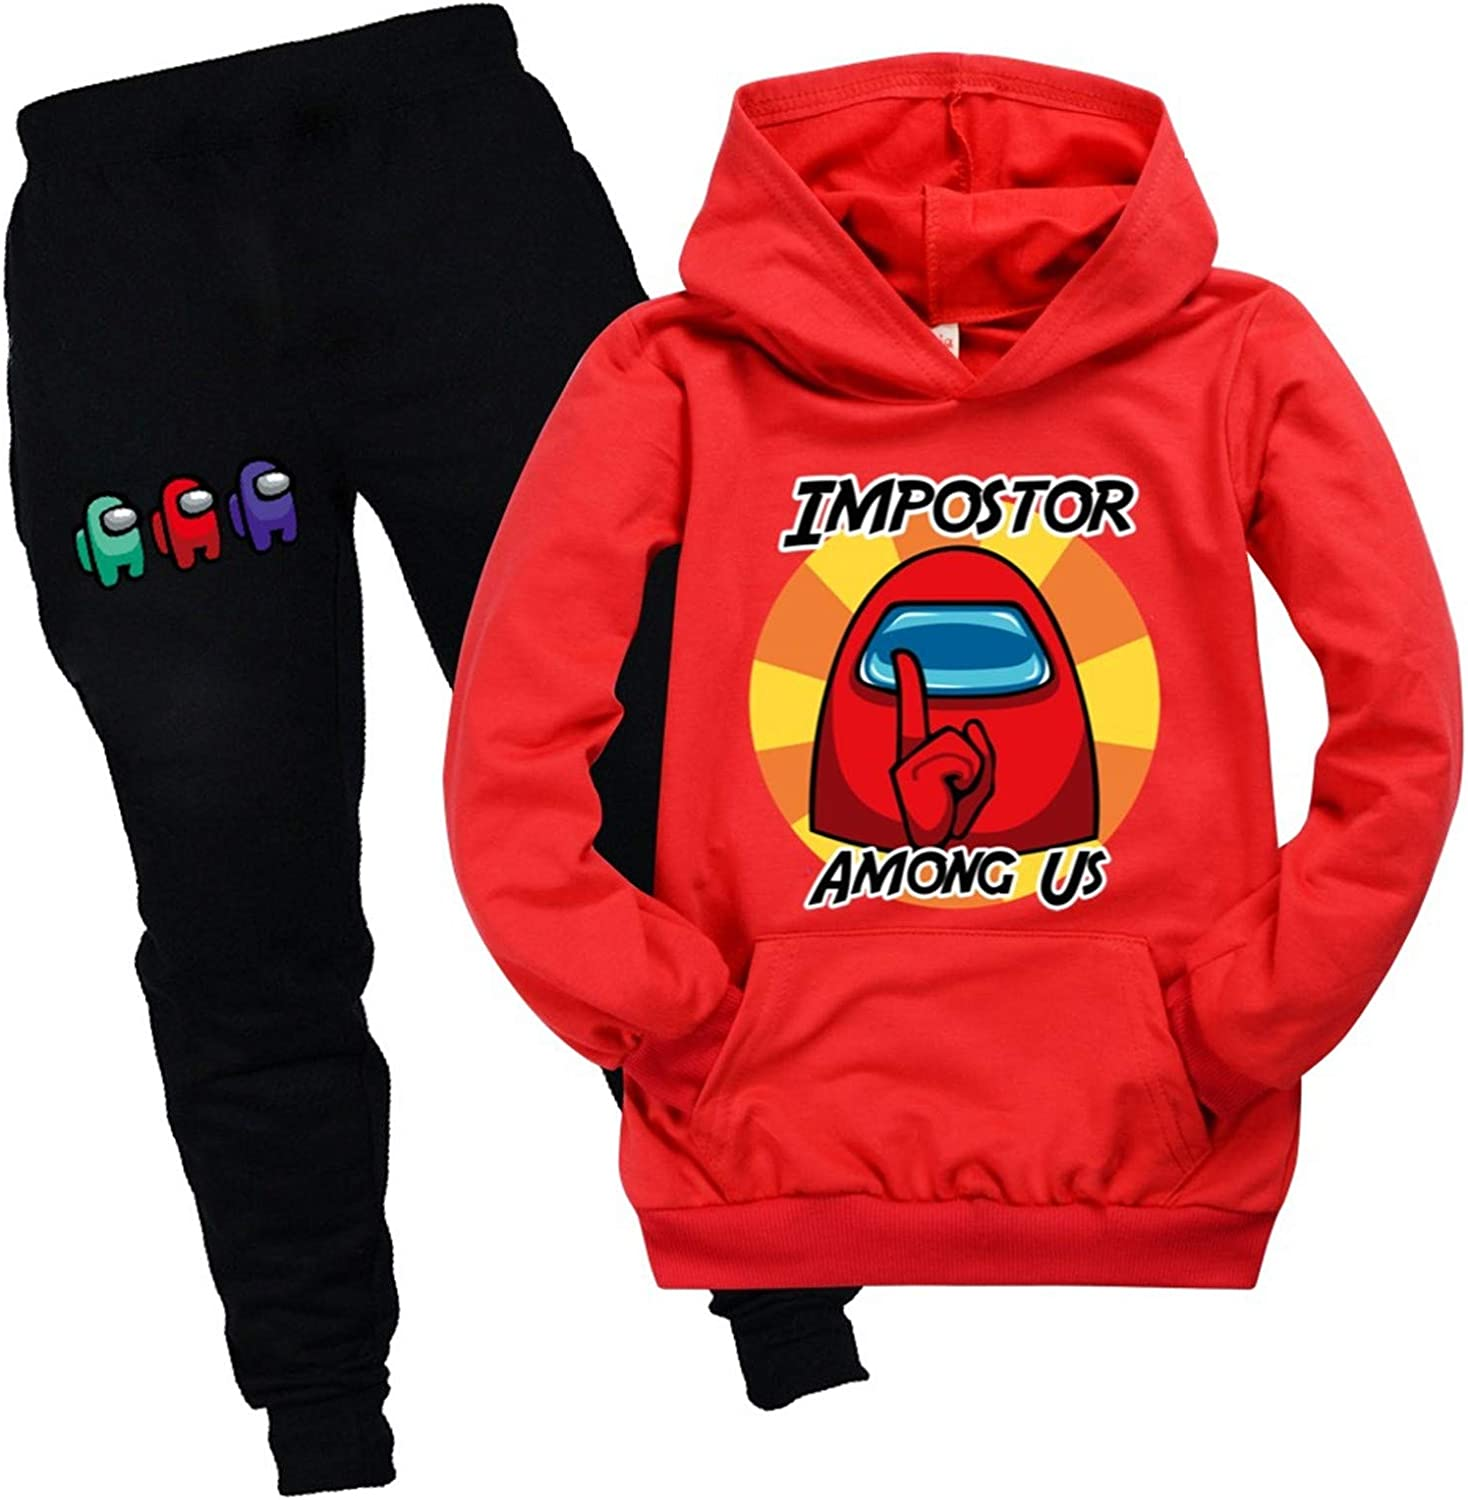 Among-Us-Impostor Kids Hoodie Sweater and Sweatpants Tracksuit Sets for Boys Girls Casual 2 Piece Sweatshirt Suit lovty